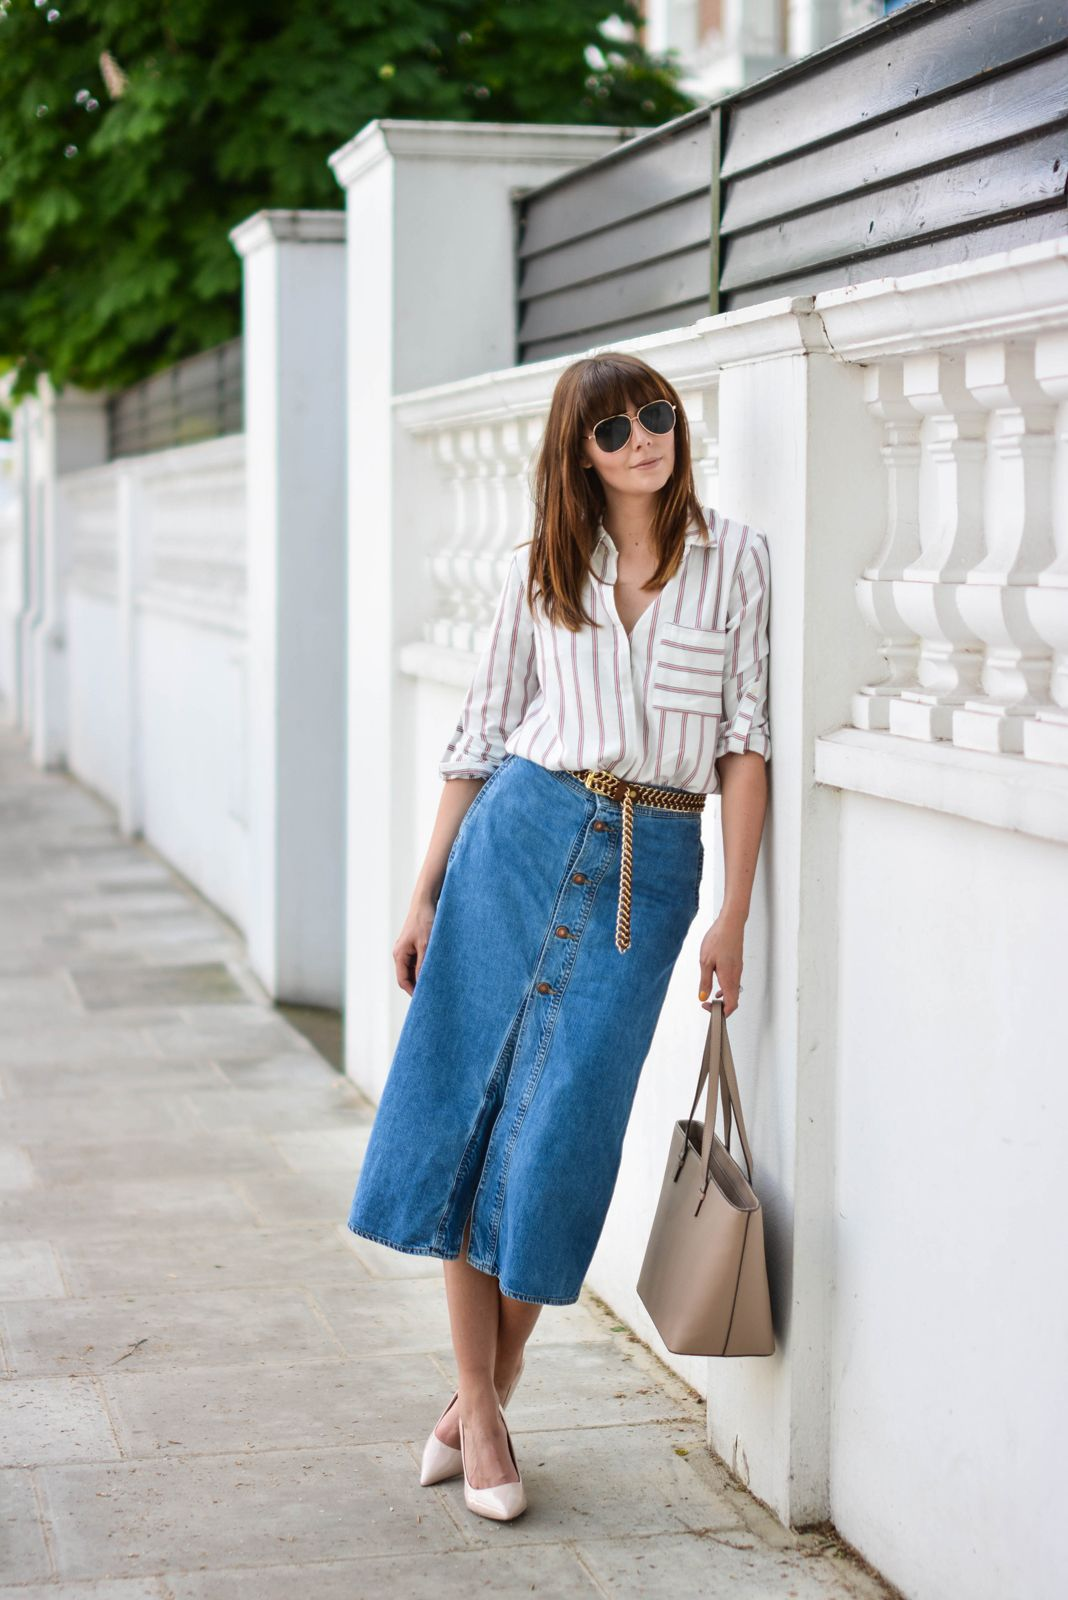 EJSTYLE - Emma Hill wears Zara denim a line button midi skirt ...